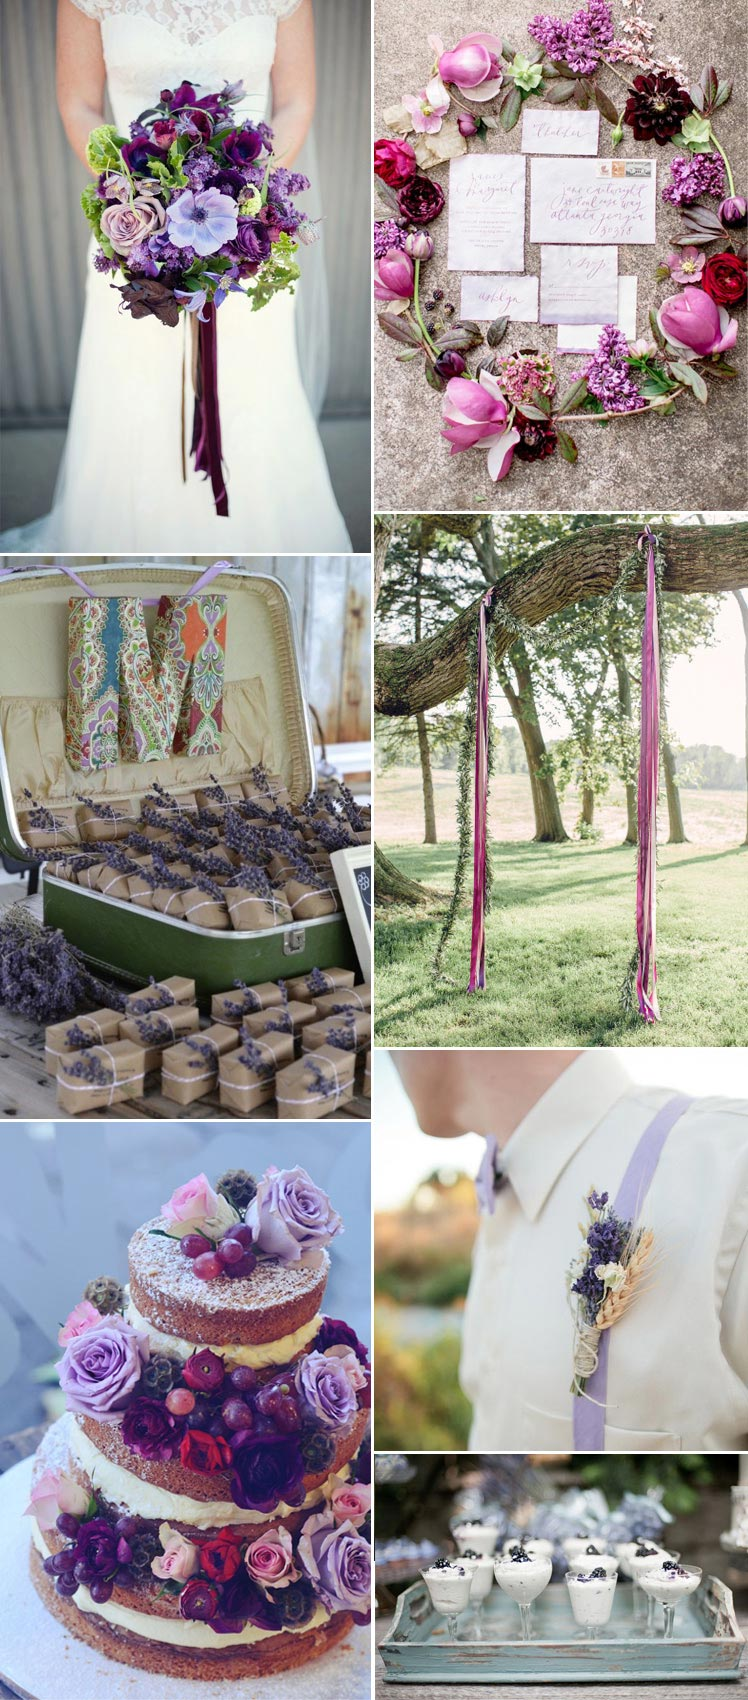 amethyst wedding ideas to incorporate throughout your day